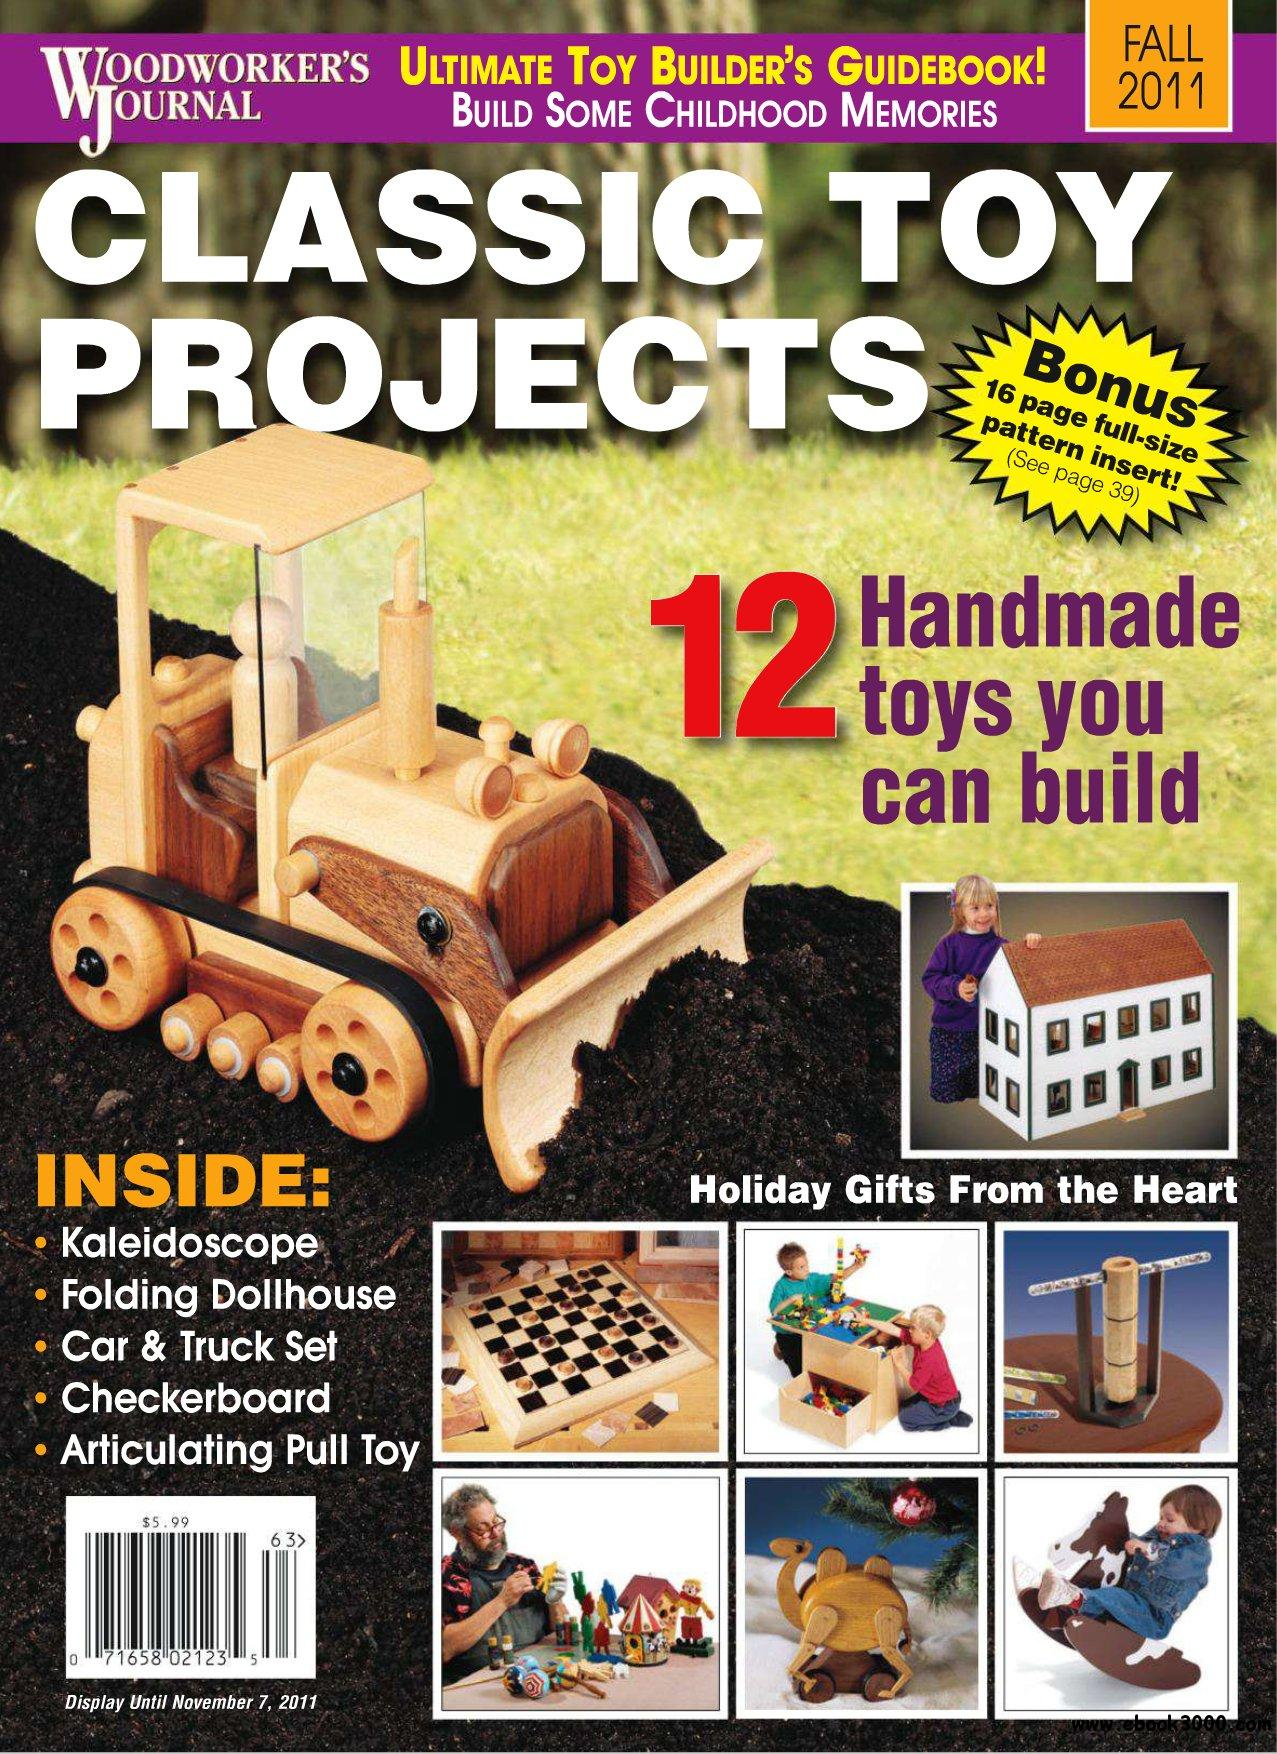 Woodworker's Journal (Fall 2011) Classic Toy Projects free download